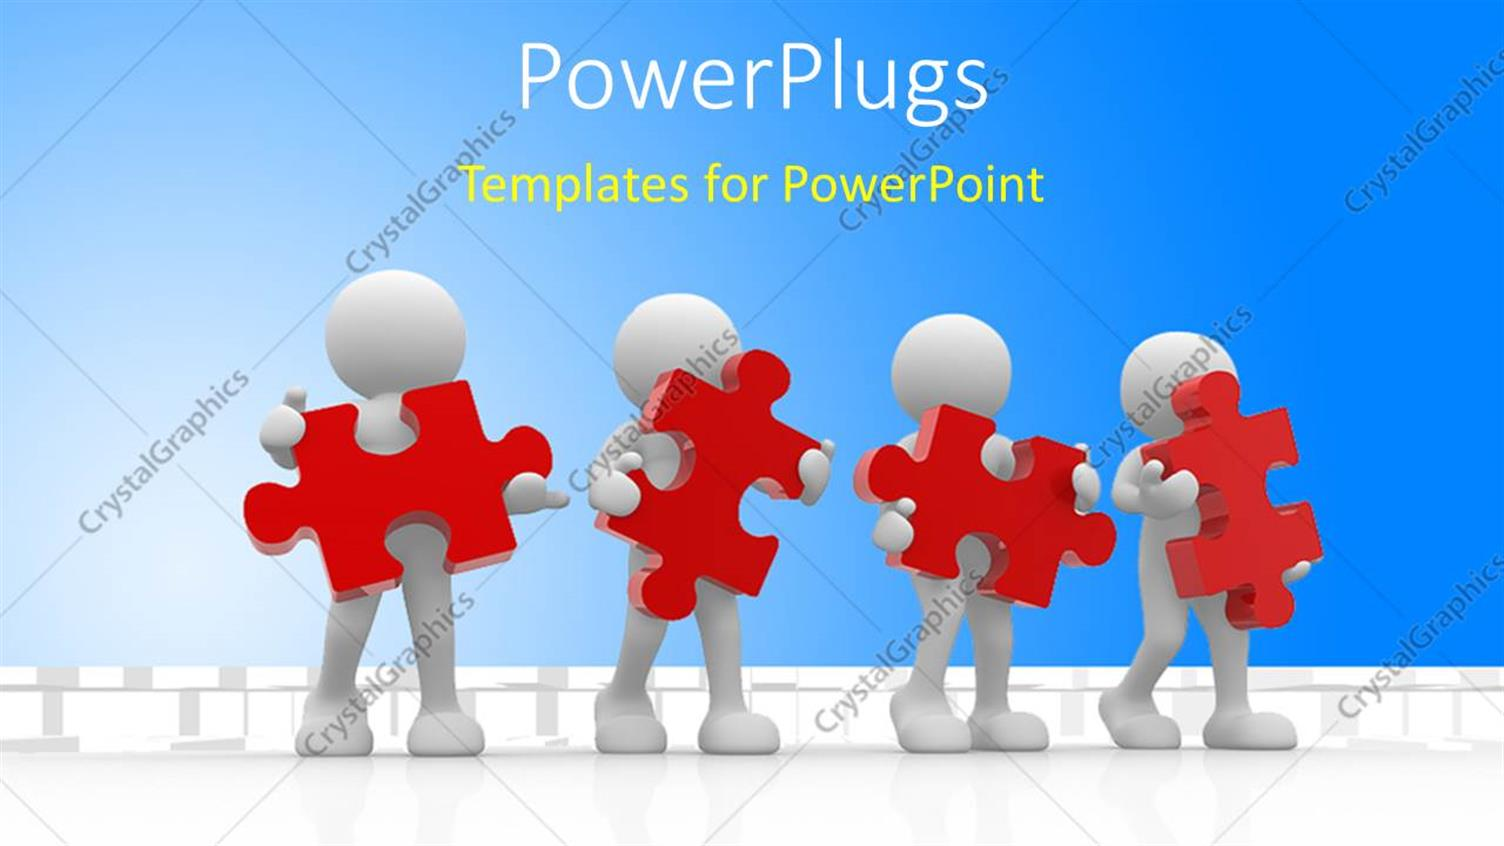 PowerPoint Template Displaying Human Character Holding Red Puzzles with Blue Color